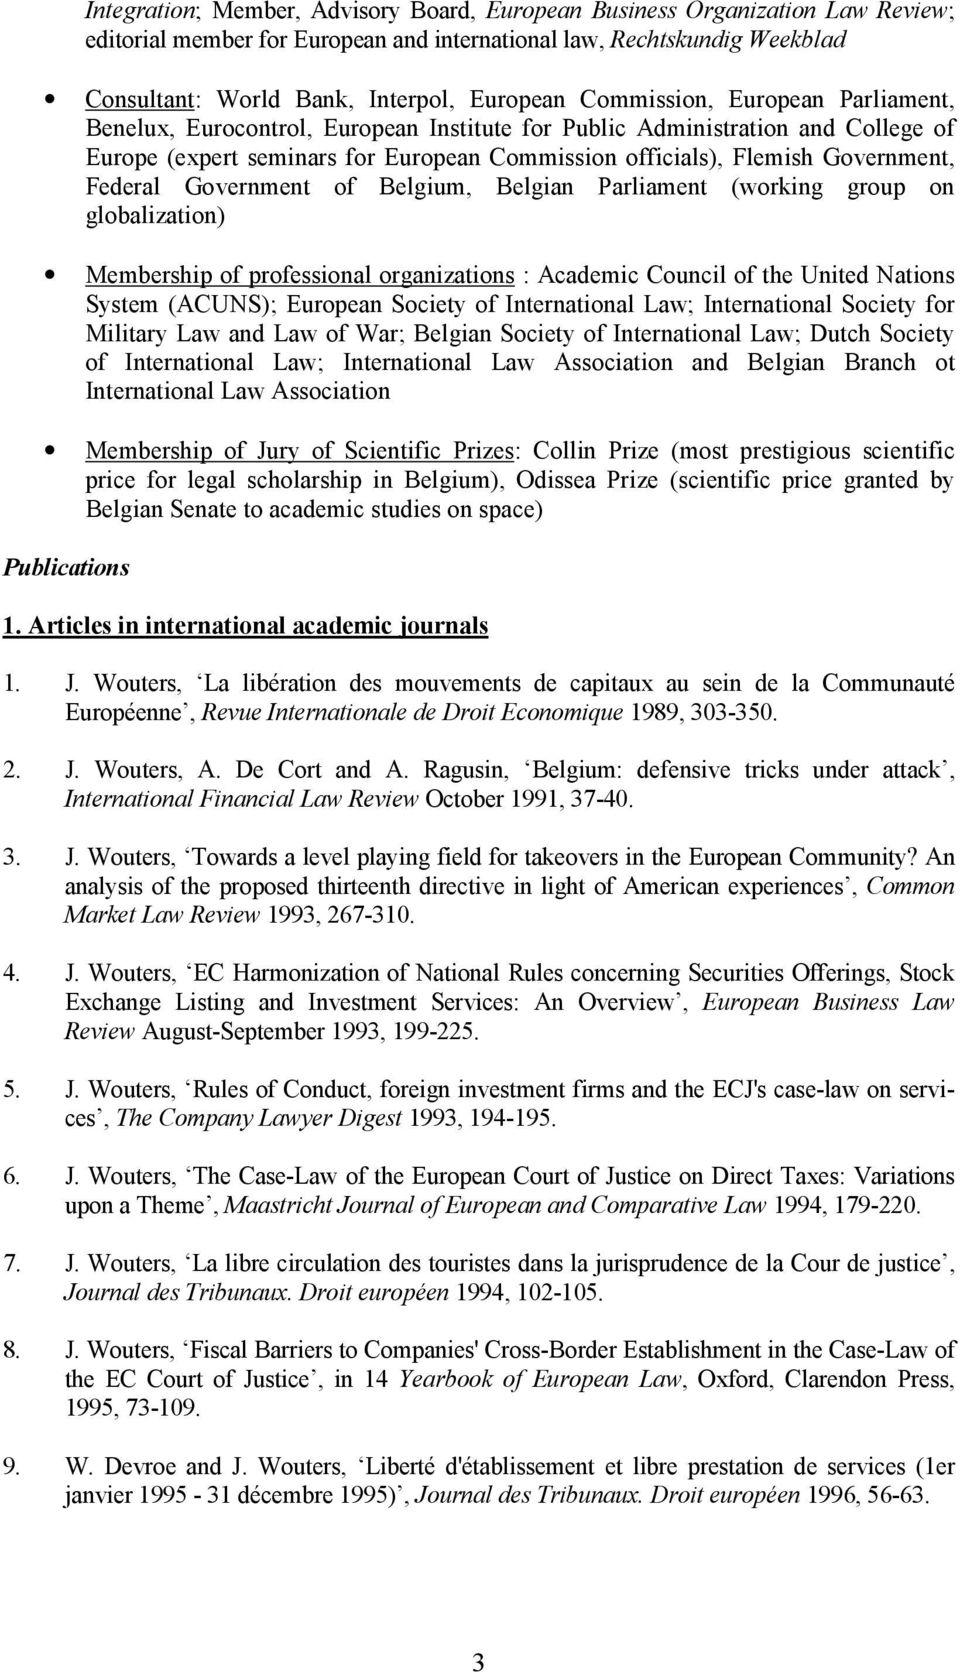 Federal Government of Belgium, Belgian Parliament (working group on globalization) Membership of professional organizations : Academic Council of the United Nations System (ACUNS); European Society